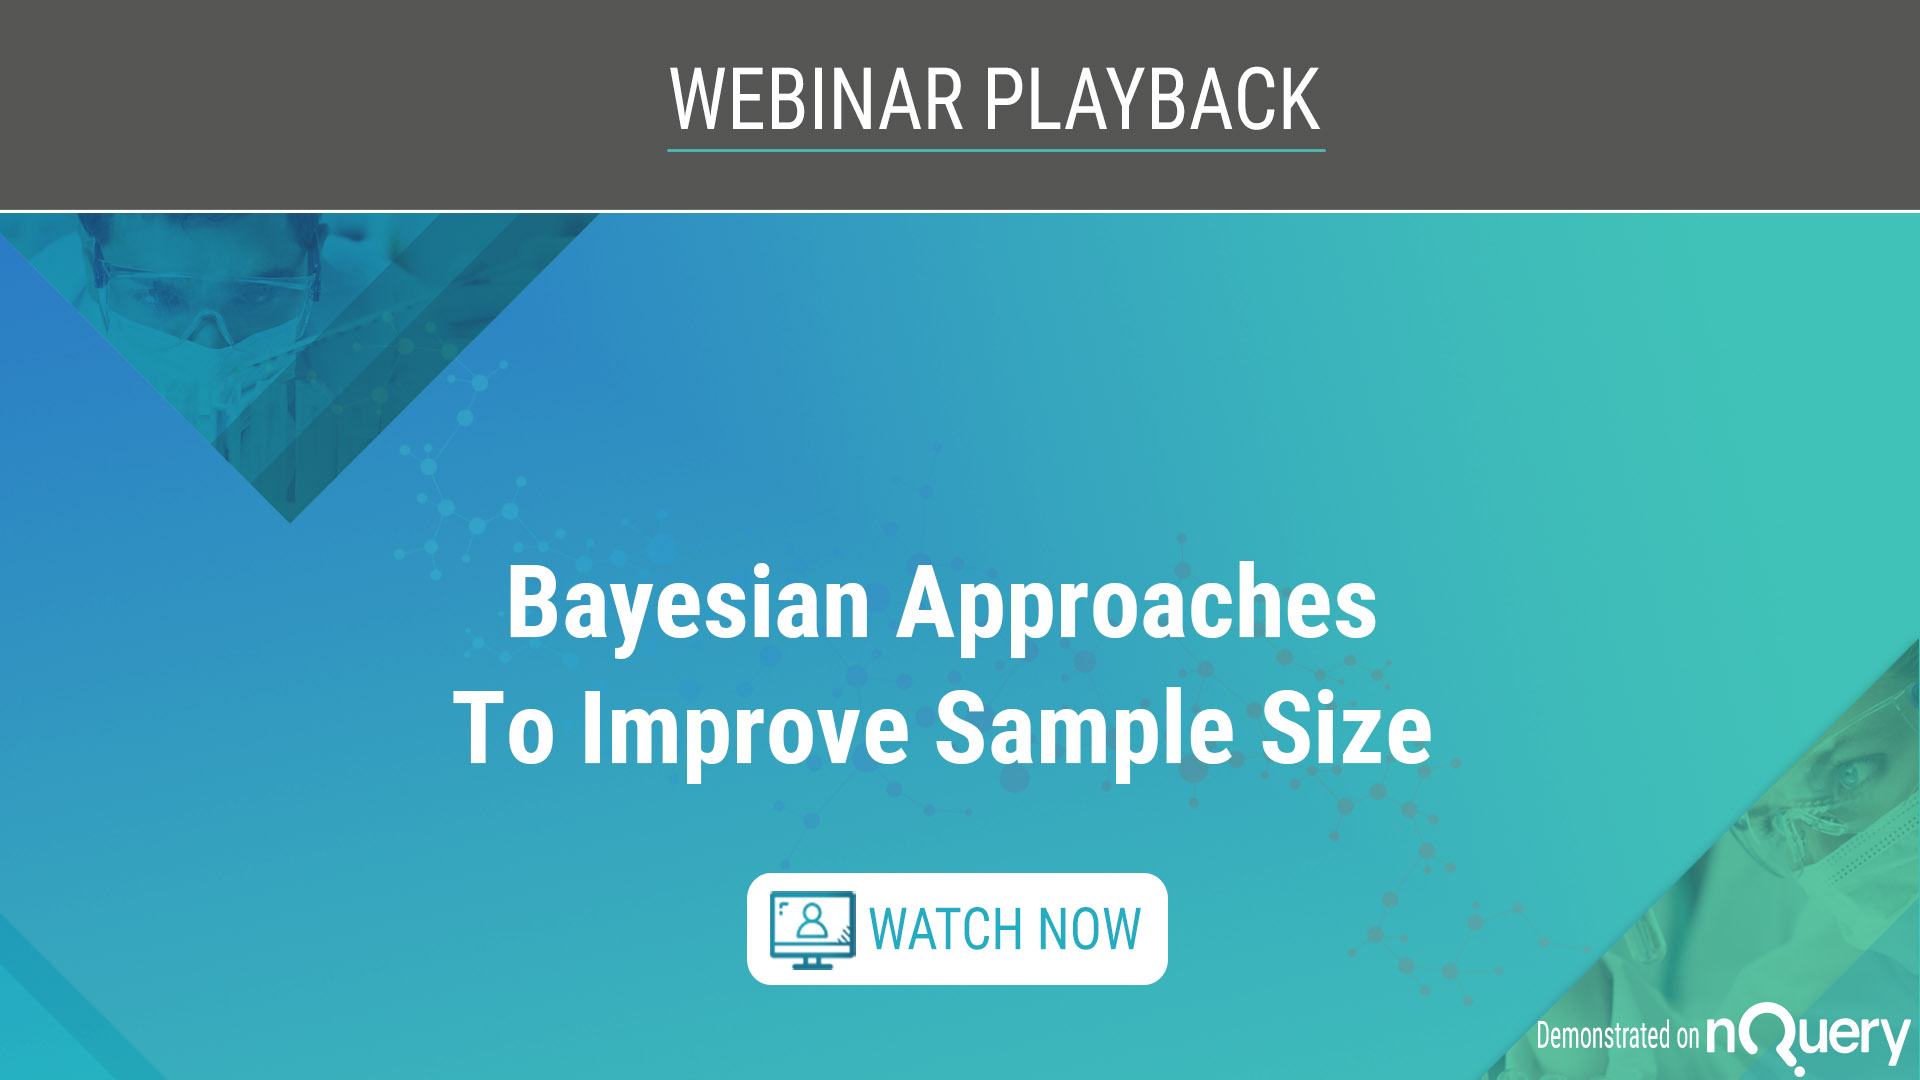 bayesian-approaches-to-improve-sample-size-on-demand-1920-1080